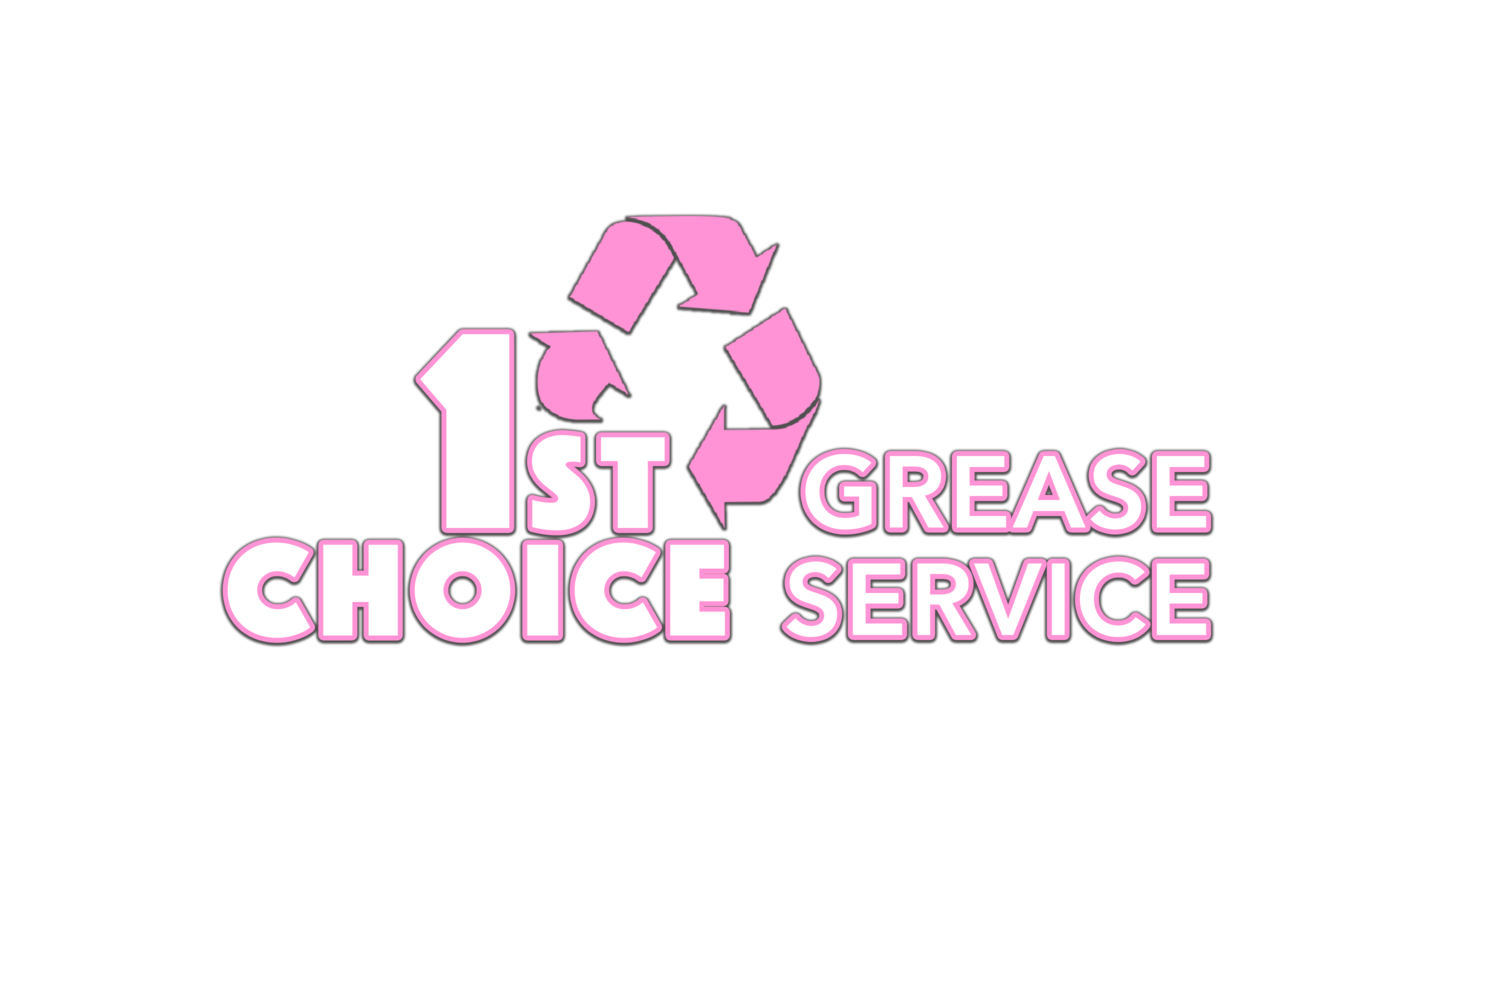 1st Choice Grease Service